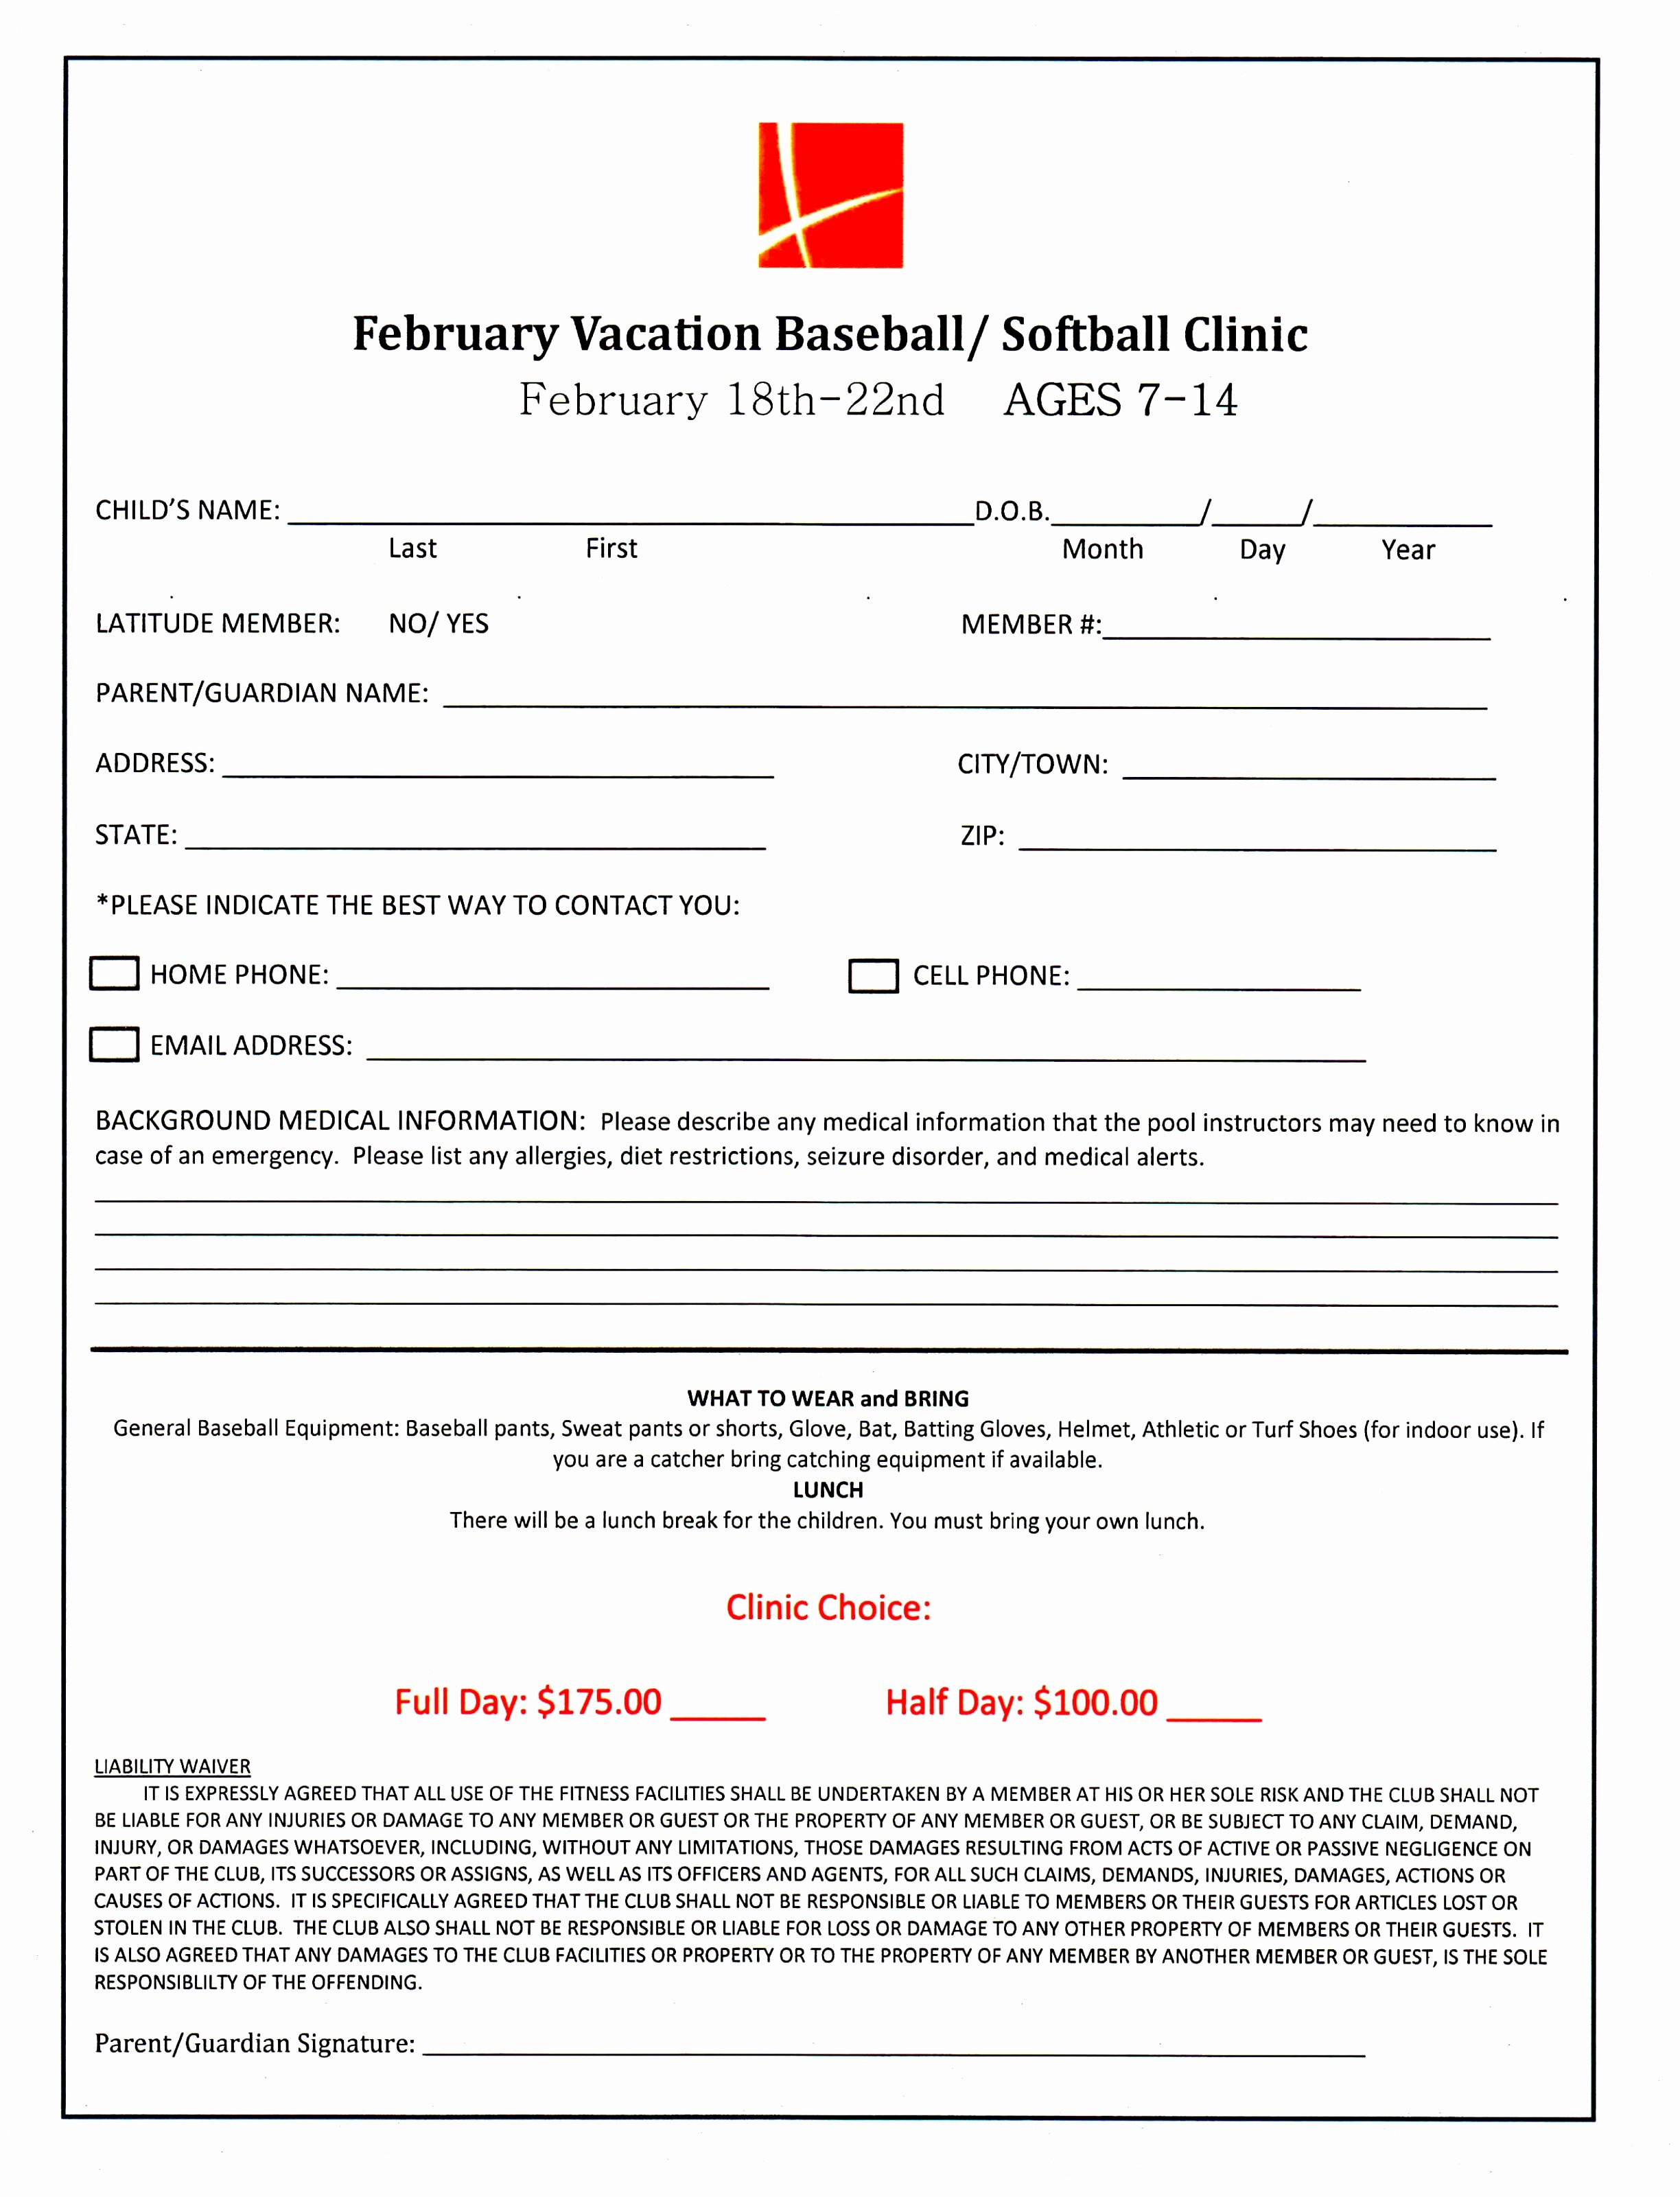 7 Baseball Registration form Template Piuur